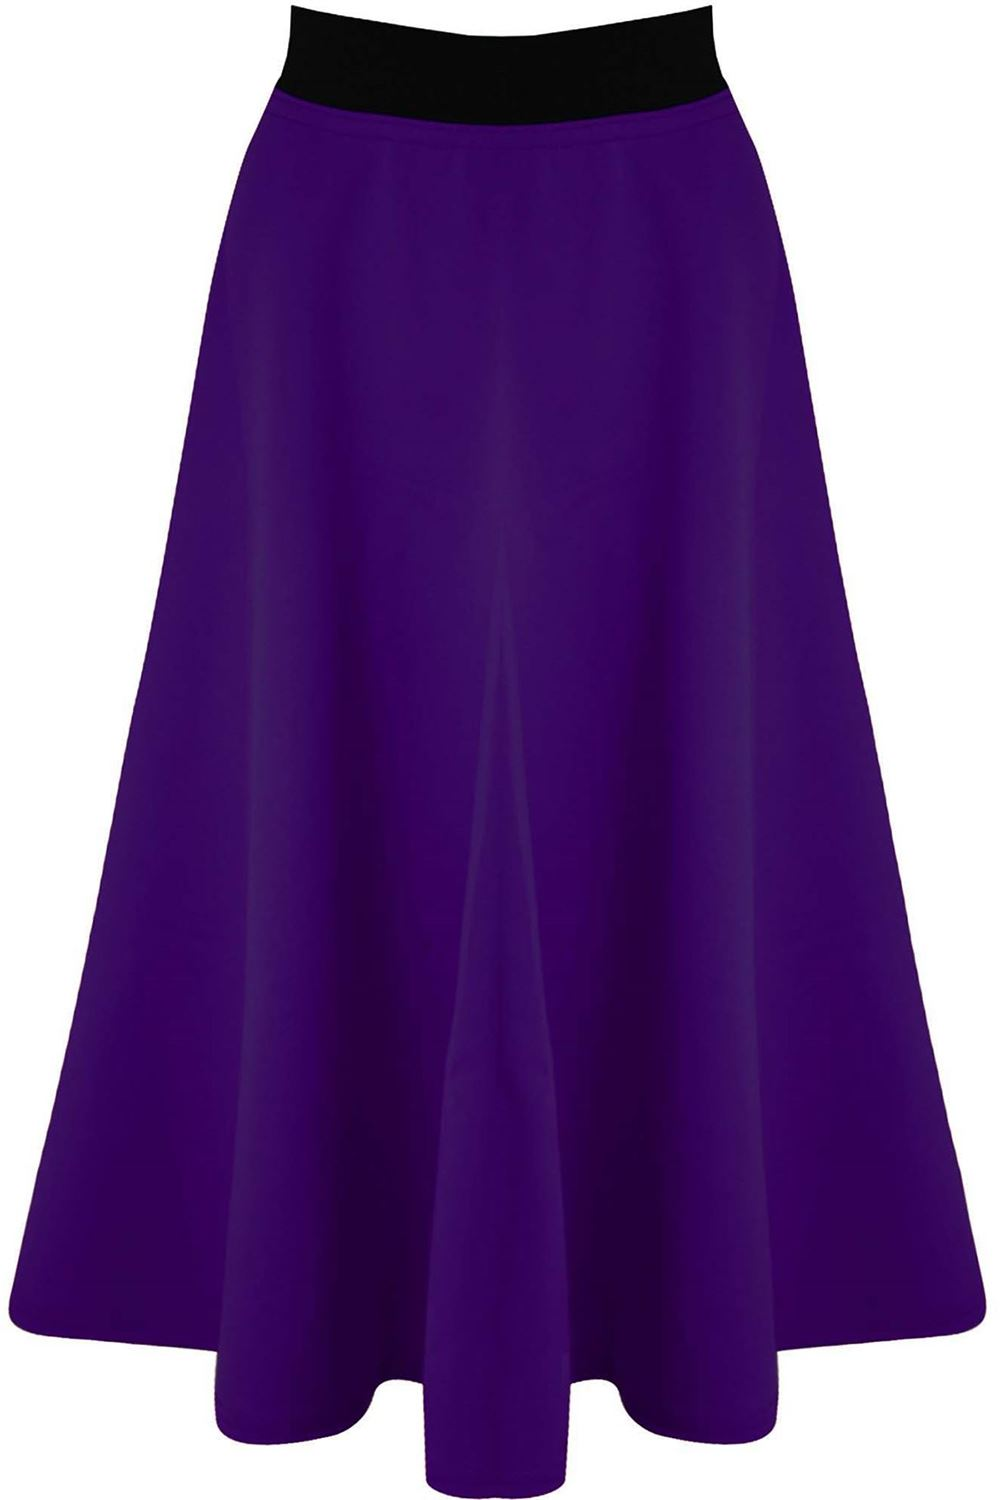 Plus-Size-Womens-Ladies-Mid-Length-Stretch-Flared-Skater-Swing-Long-Scuba-Skirt